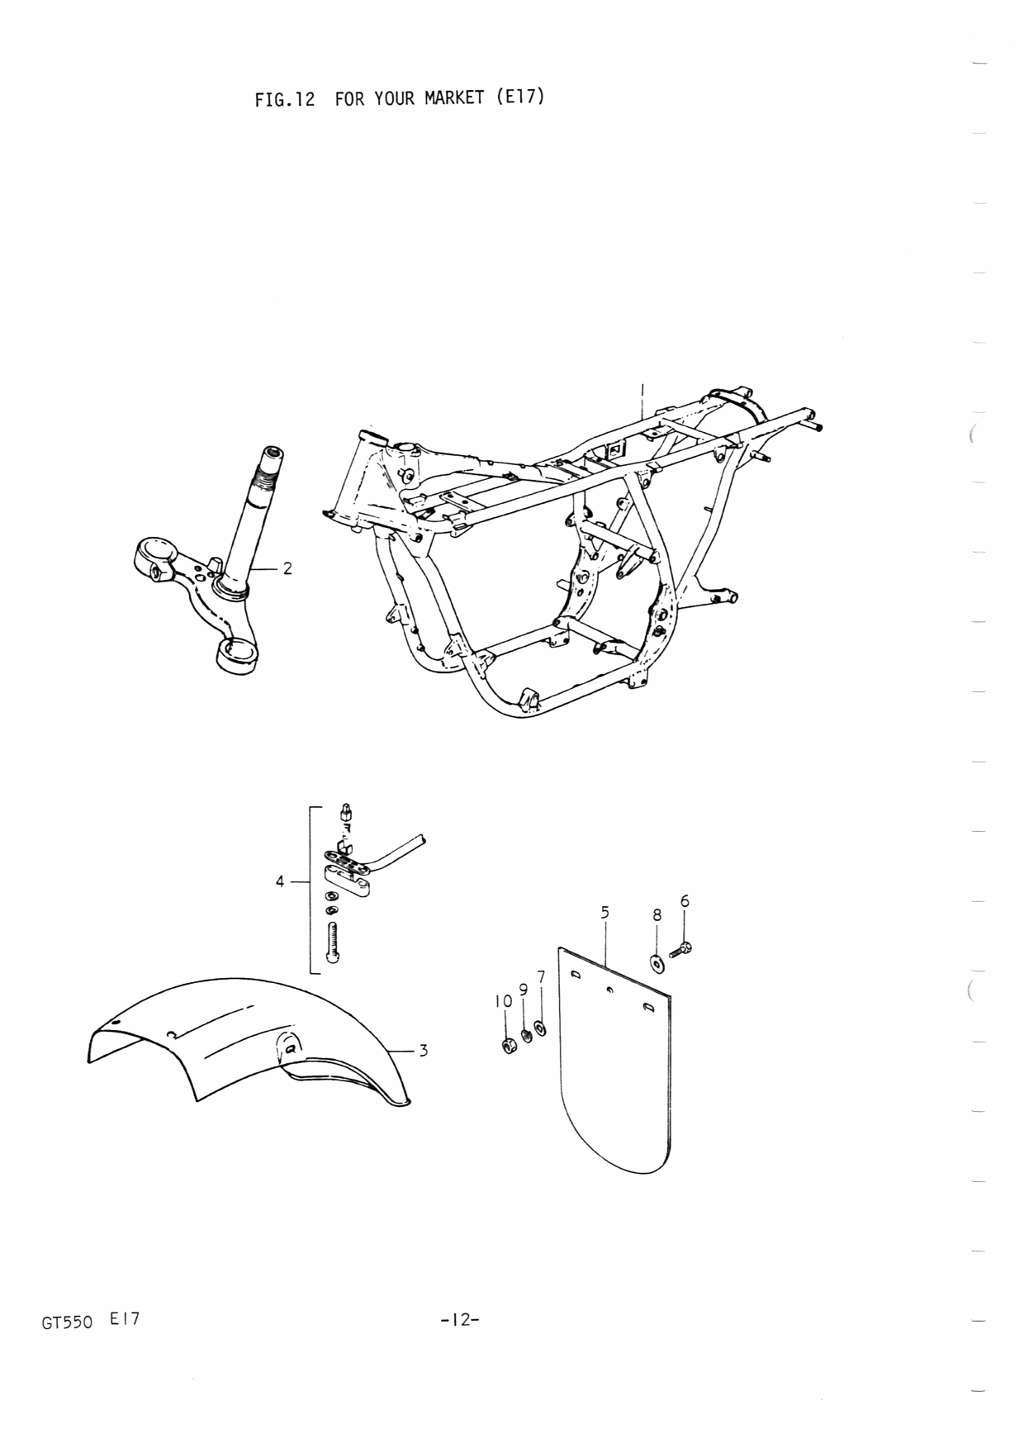 GT550 Country Specific Parts Lists